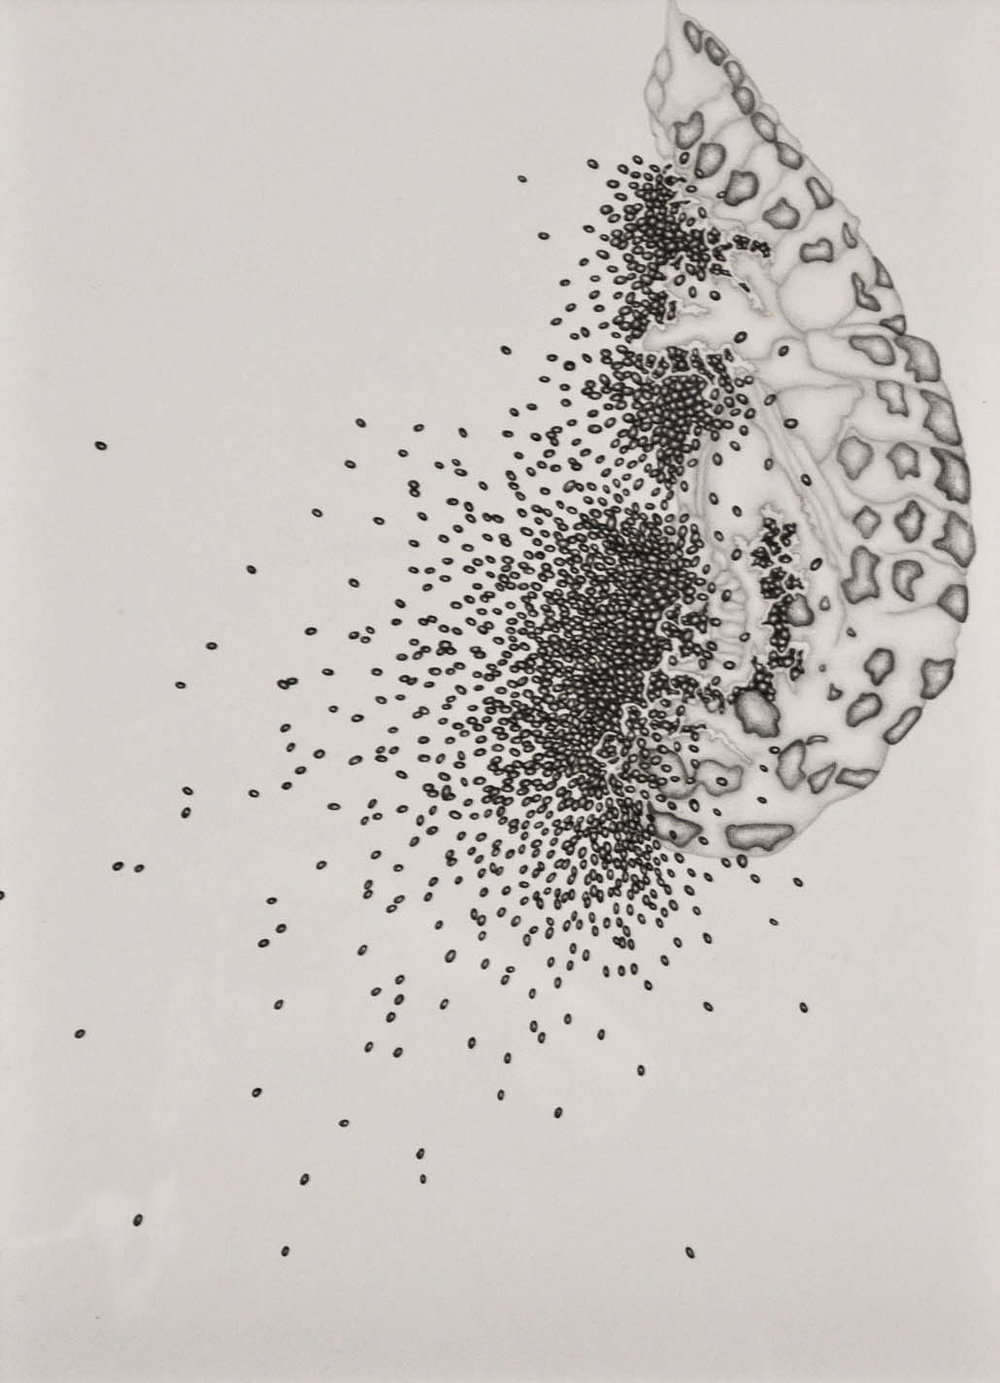 Chrysalis 002,  2013. 50cmx35cm. Pencil on Fabriano paper.